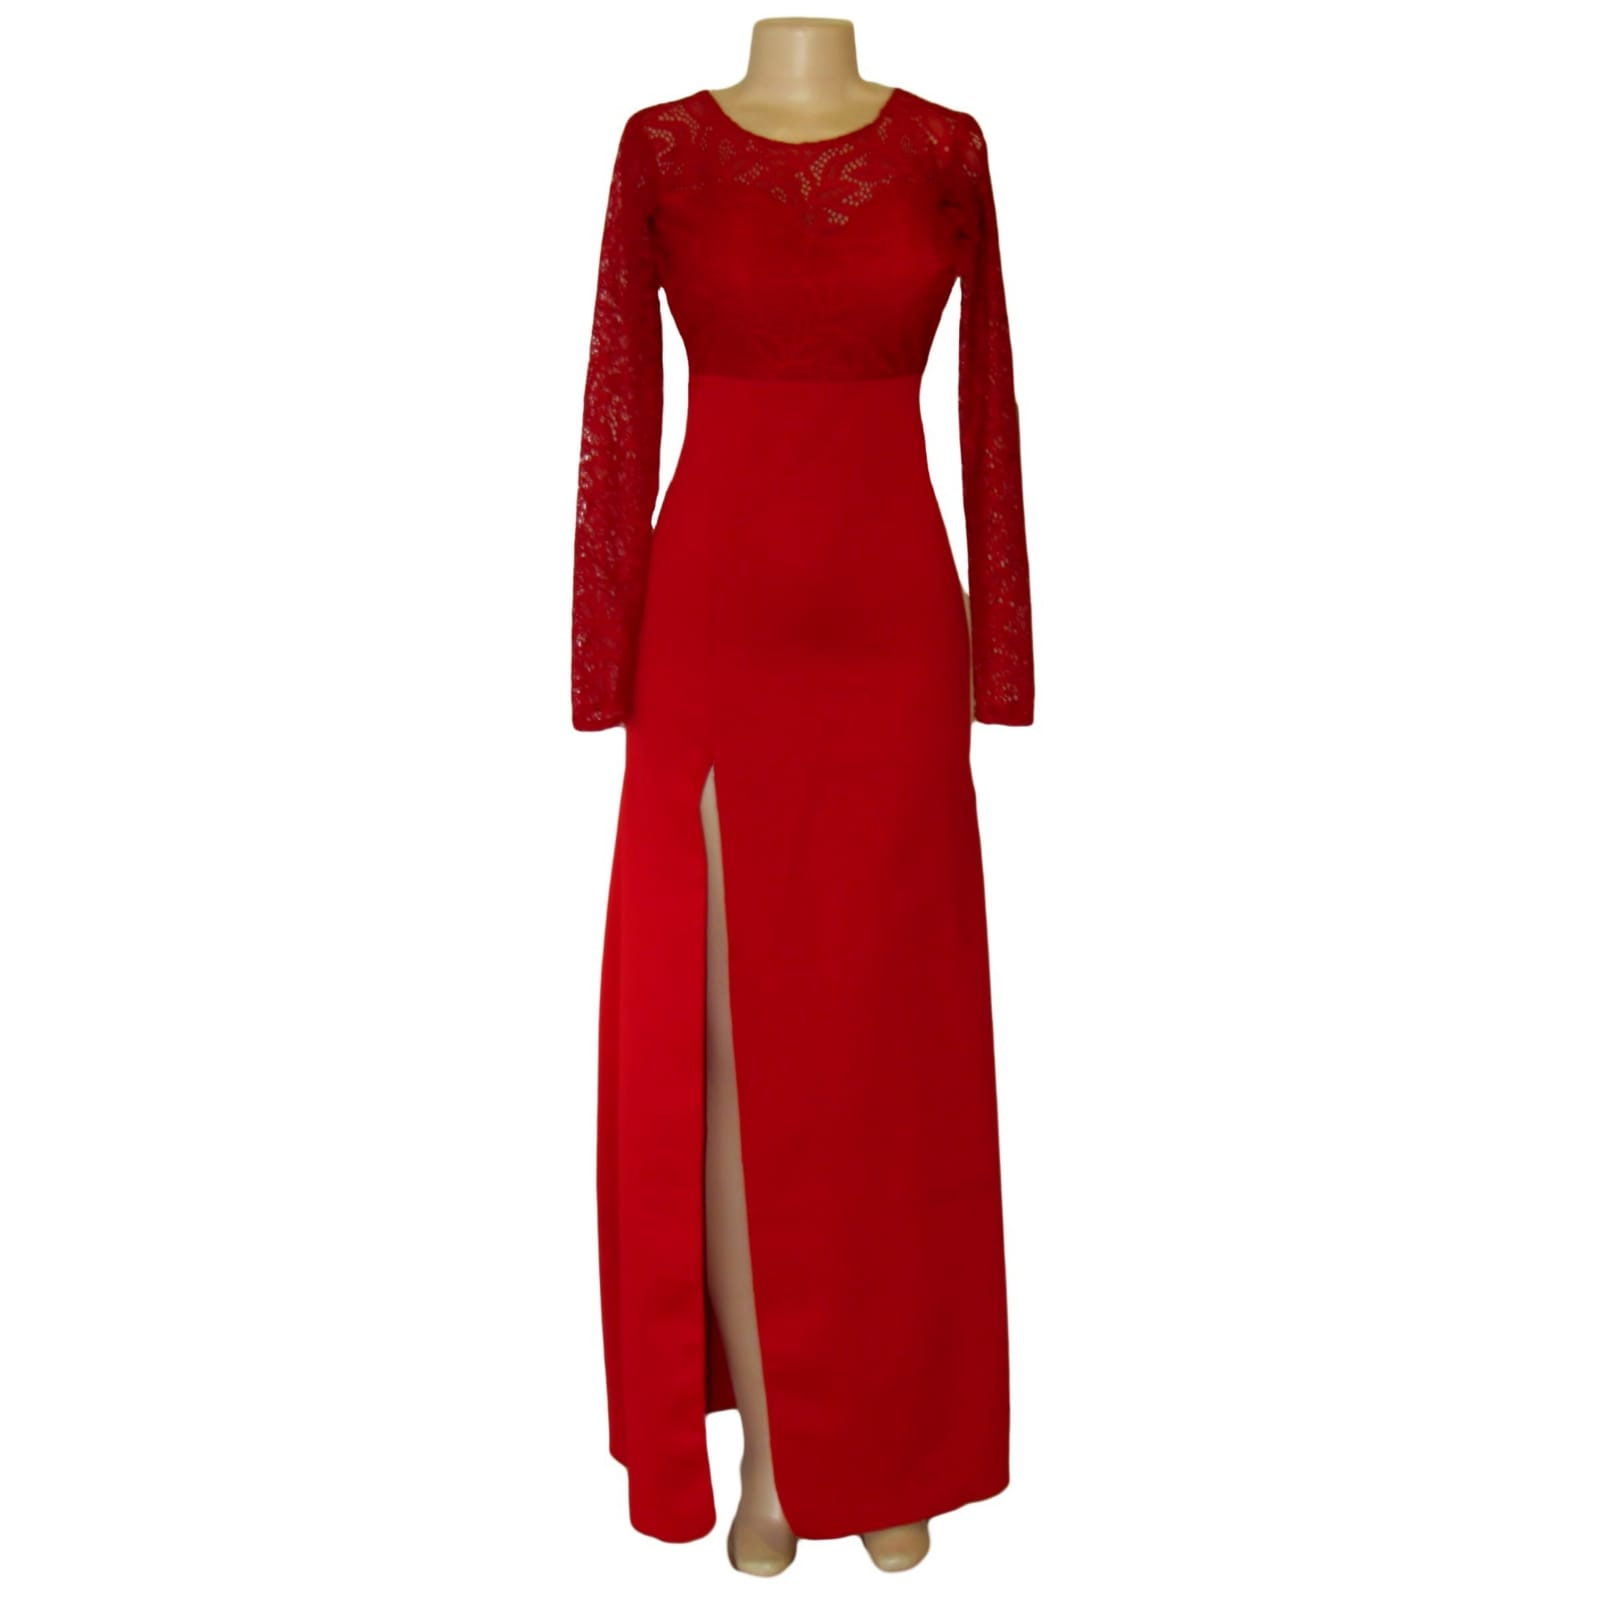 Straight cut deep red open back gala dress 7 straight cut deep red open back gala dress. With a lace bodice, long lace sleeves and a slit. With a detachable train.